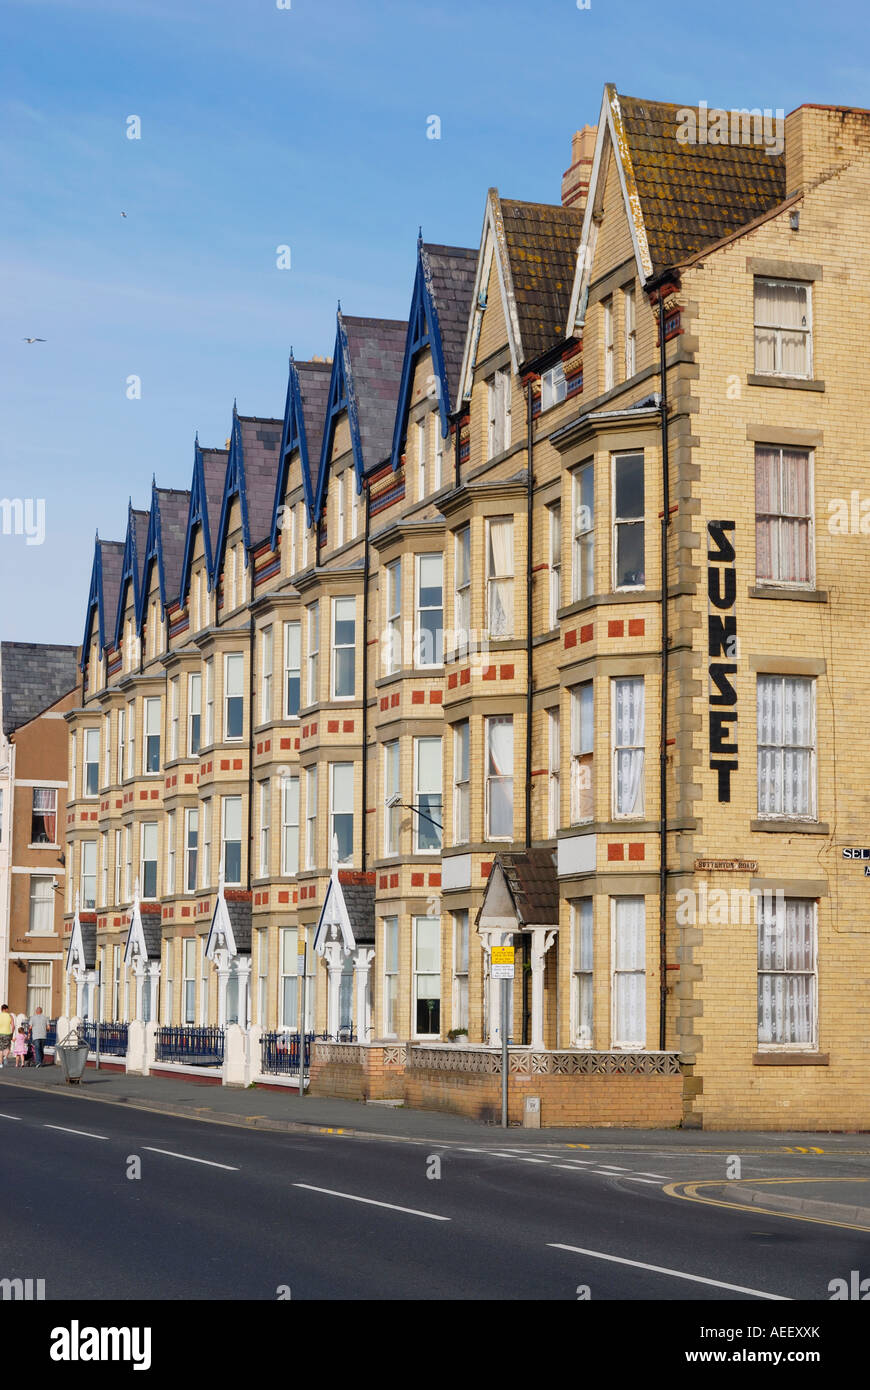 Refurbished seafront properties on the promenade in the coastal resort town of Rhyl, Denbighshire, North Wales - Stock Image